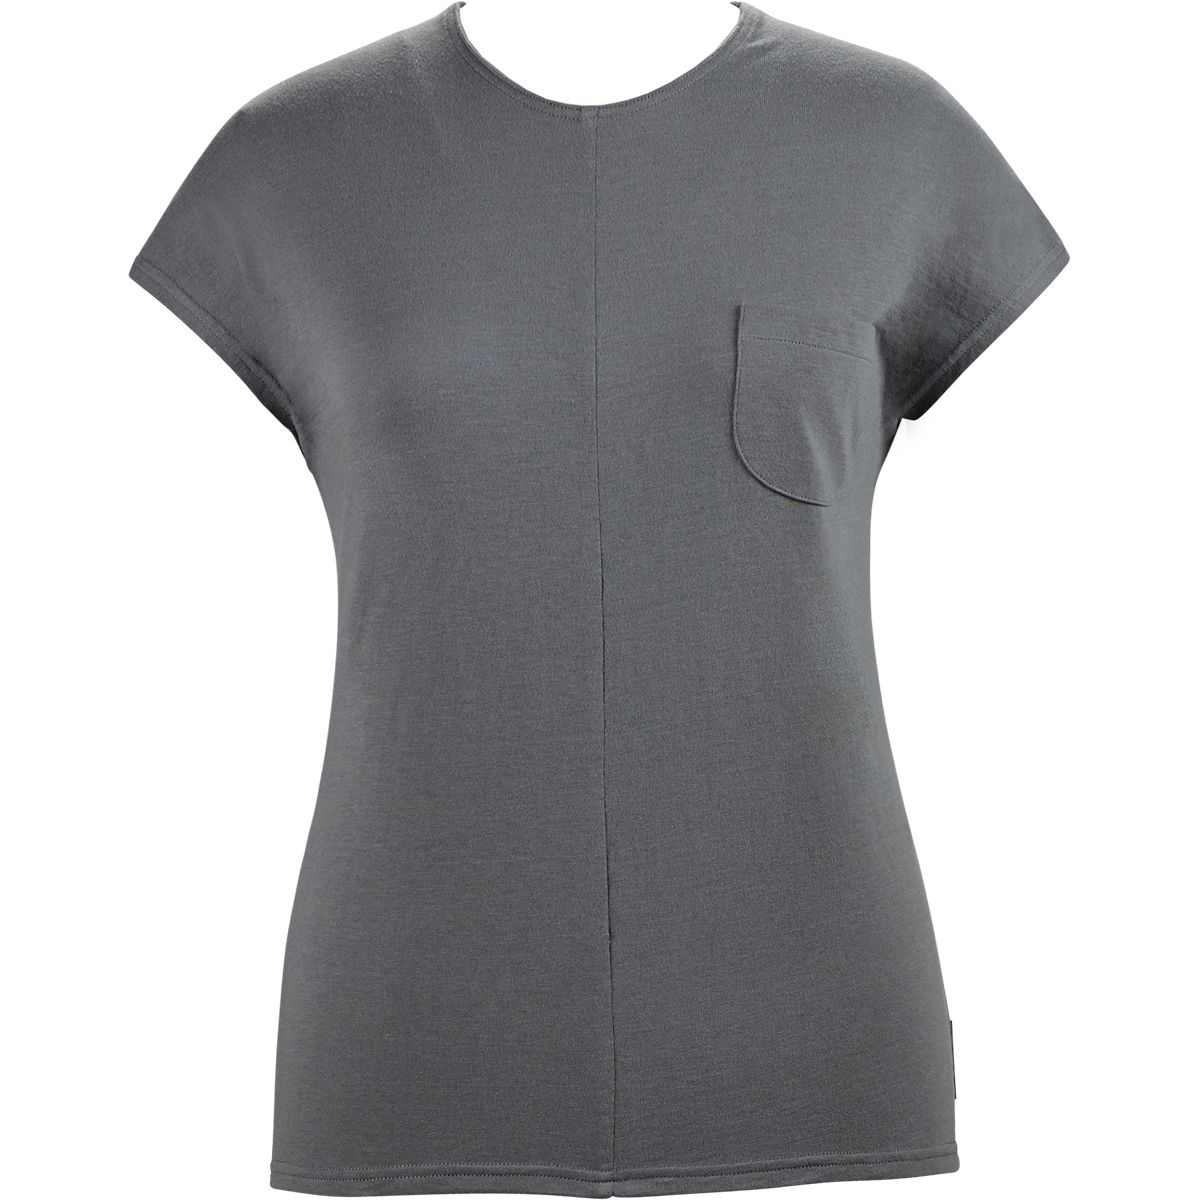 Alchemy Equipment Damen Cotton Luxe T-Shirt (Größe XS, Grau) | T-Shirts Freizeit > Damen